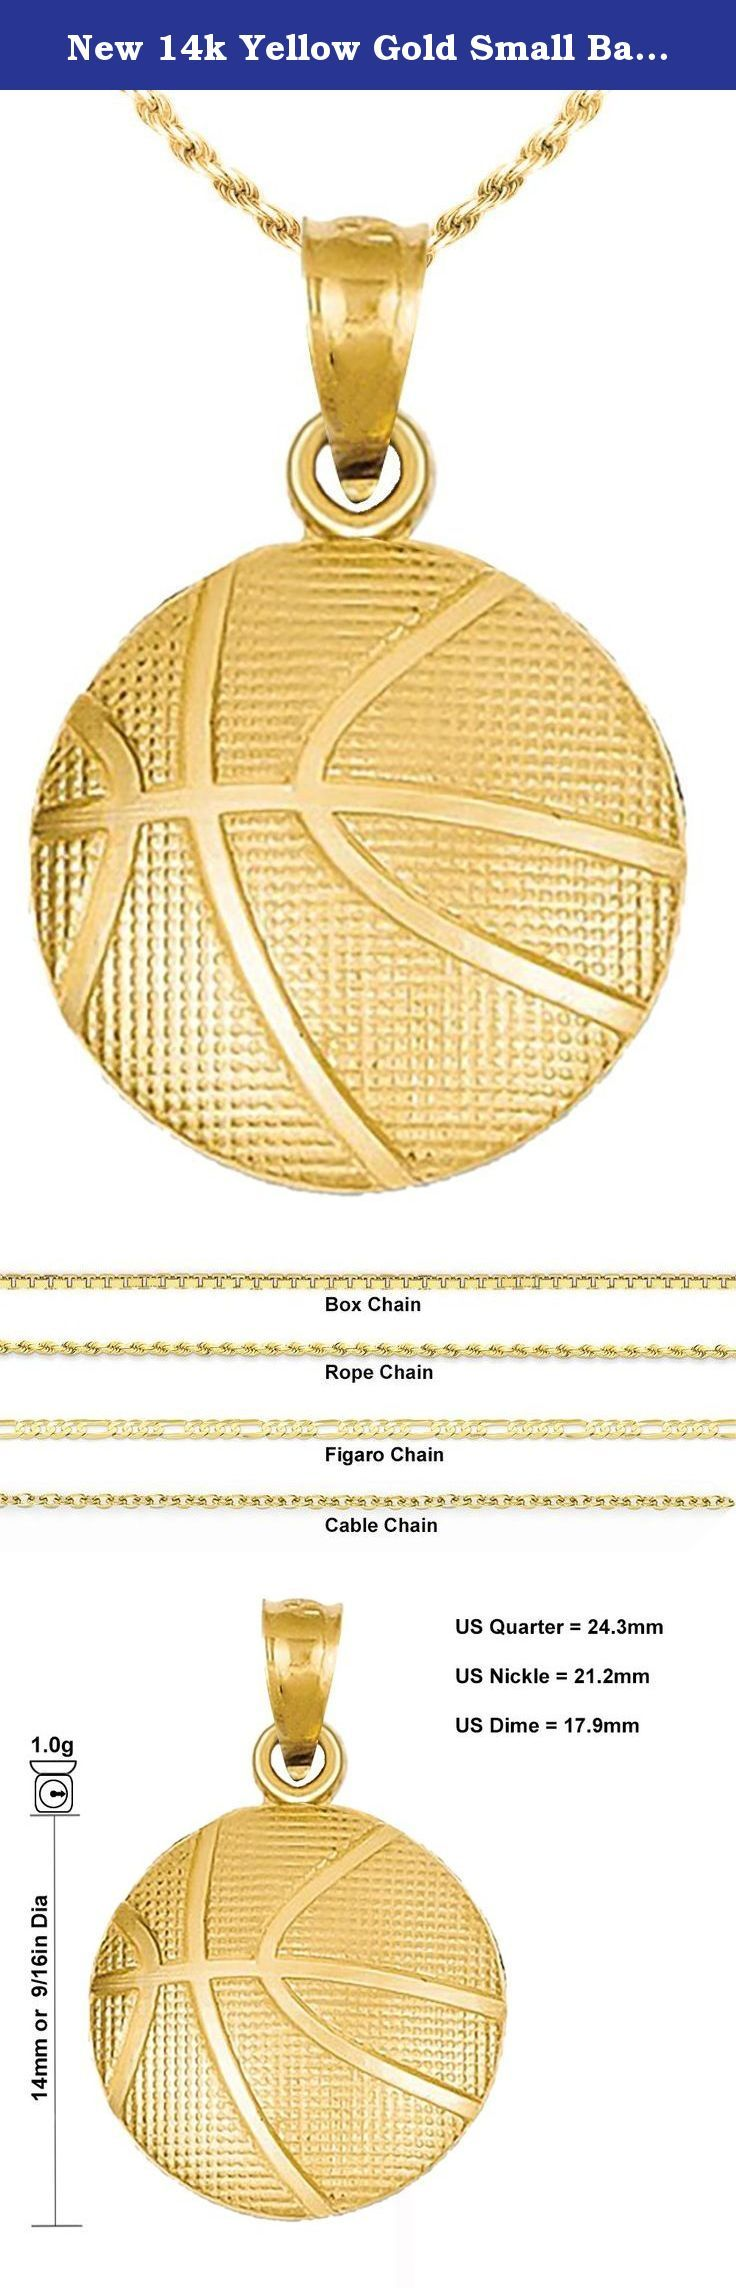 New 14k Yellow Gold Small Basketball Pendant Charm with Necklace. A brand new 14k yellow small basketball pendant with your choice of a 16in, 18in, 20in or 24in 14k gold chain in the follow styles and sizes: a 1.0mm, 1.5mm, 1.75mm or 2.0mm rope chain, a 1.0mm or 1.5mm box chain, a 1.5mm cable chain or finally a 2.5mm Figaro chain. Basketball was invented in 1891 by Canadian physical education instructor James Naismith as a less injury-prone sport than football in Springfield…